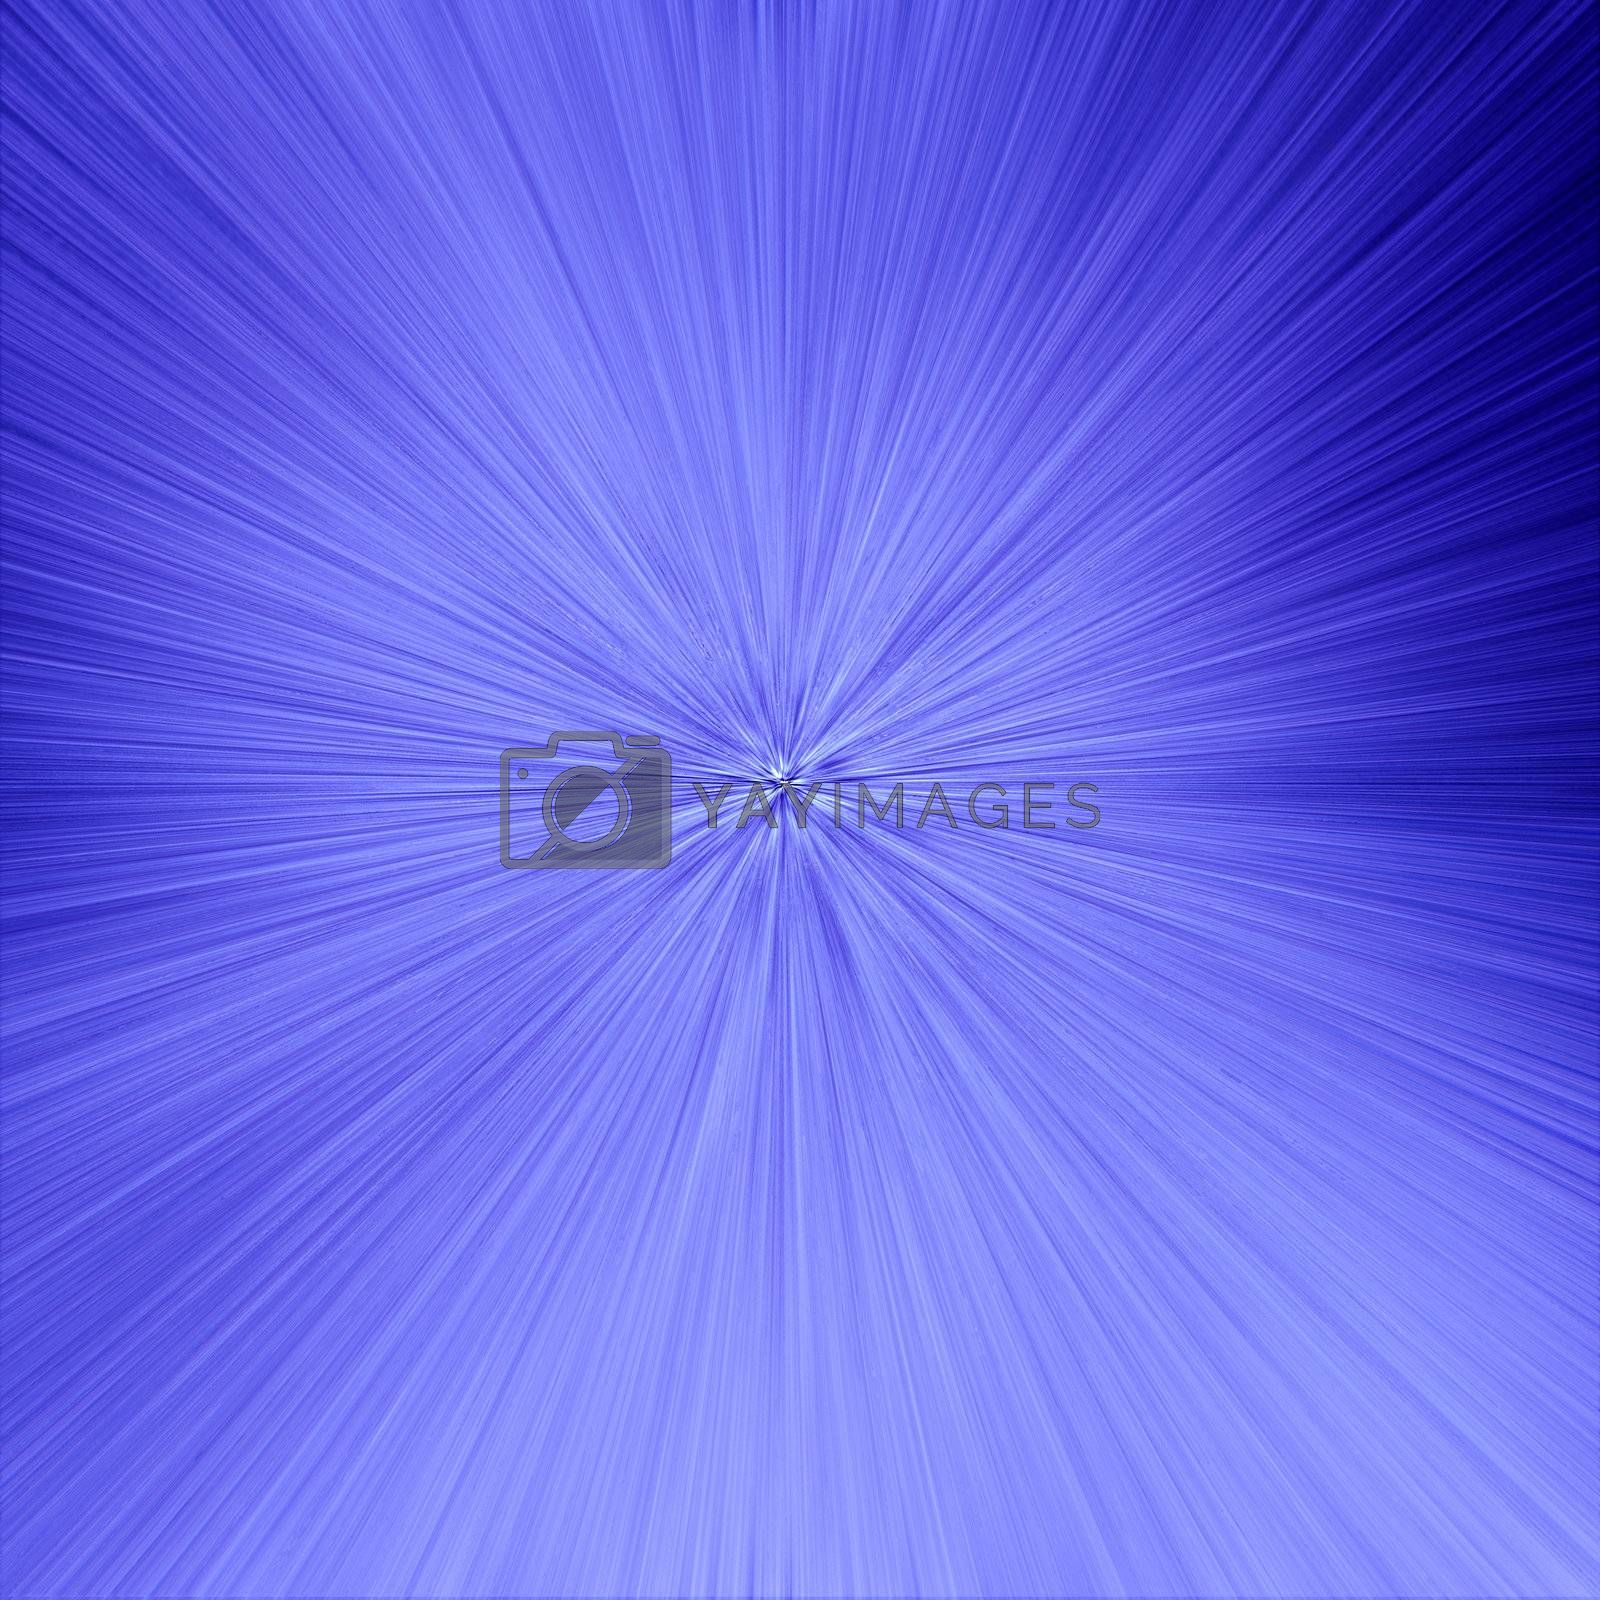 Straight lines converging against a blue background